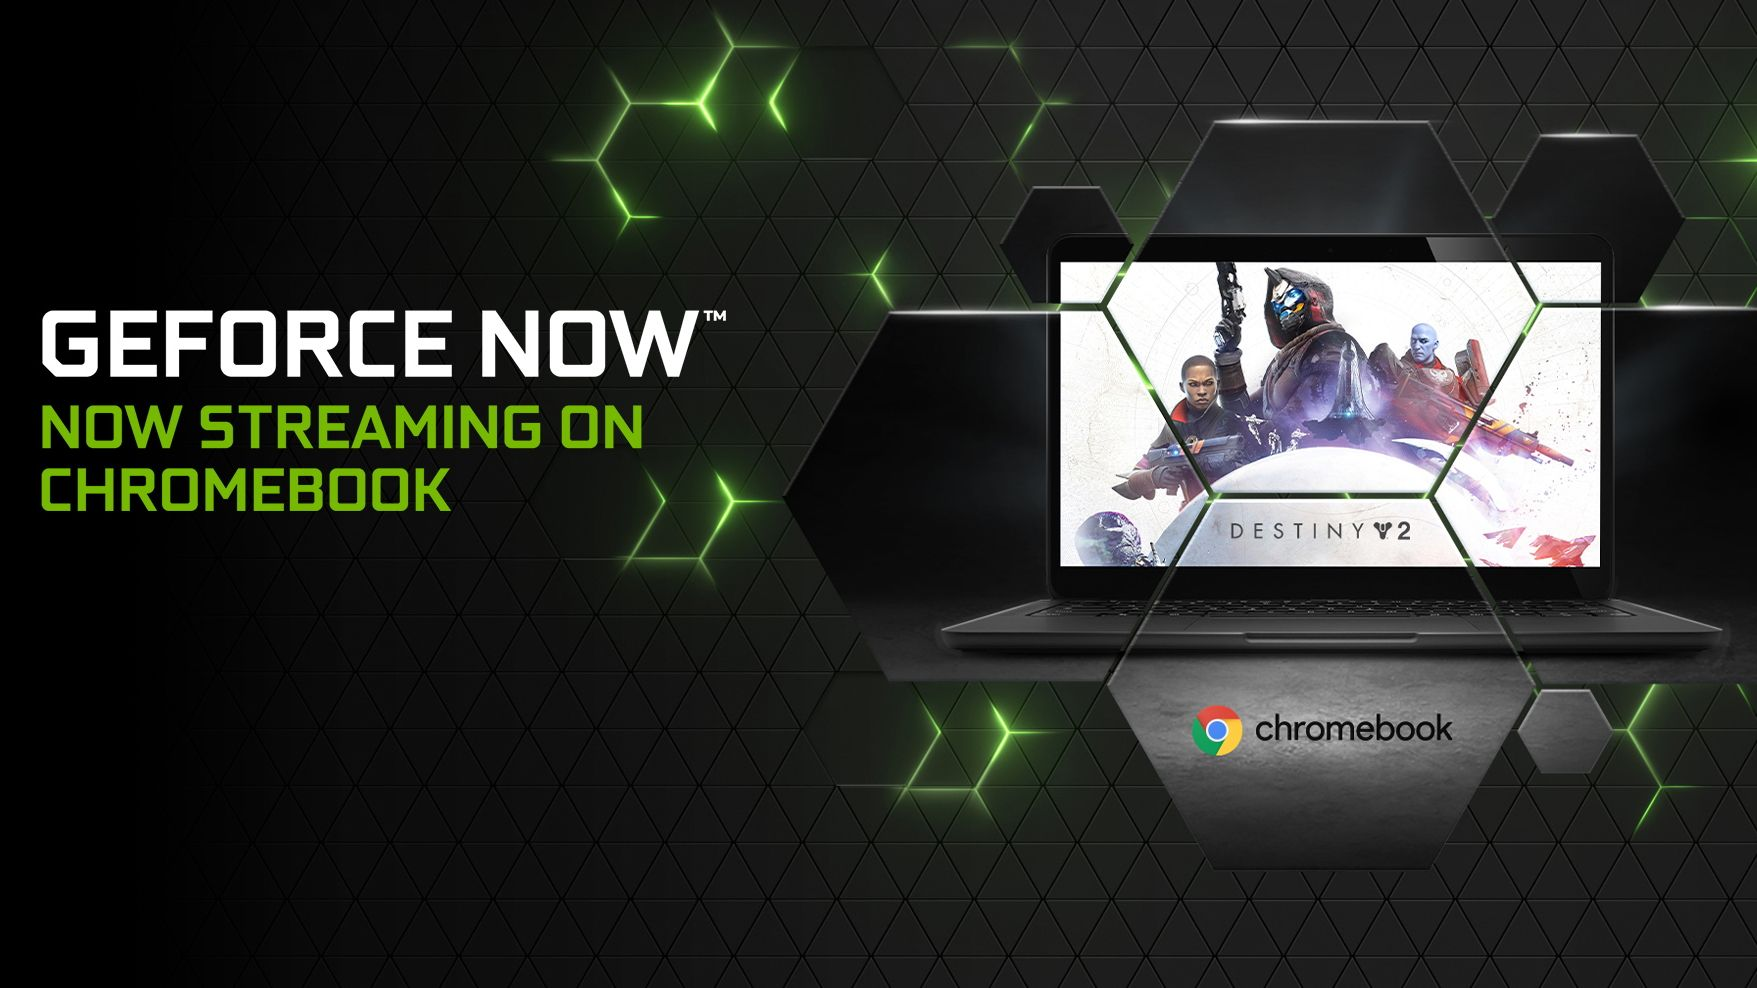 Chromebooks Get Three Free Months Of Nvidia Geforce Now Just In Time For Cyperpunk 2077 In 2020 Steam Video Games Now Games Nvidia